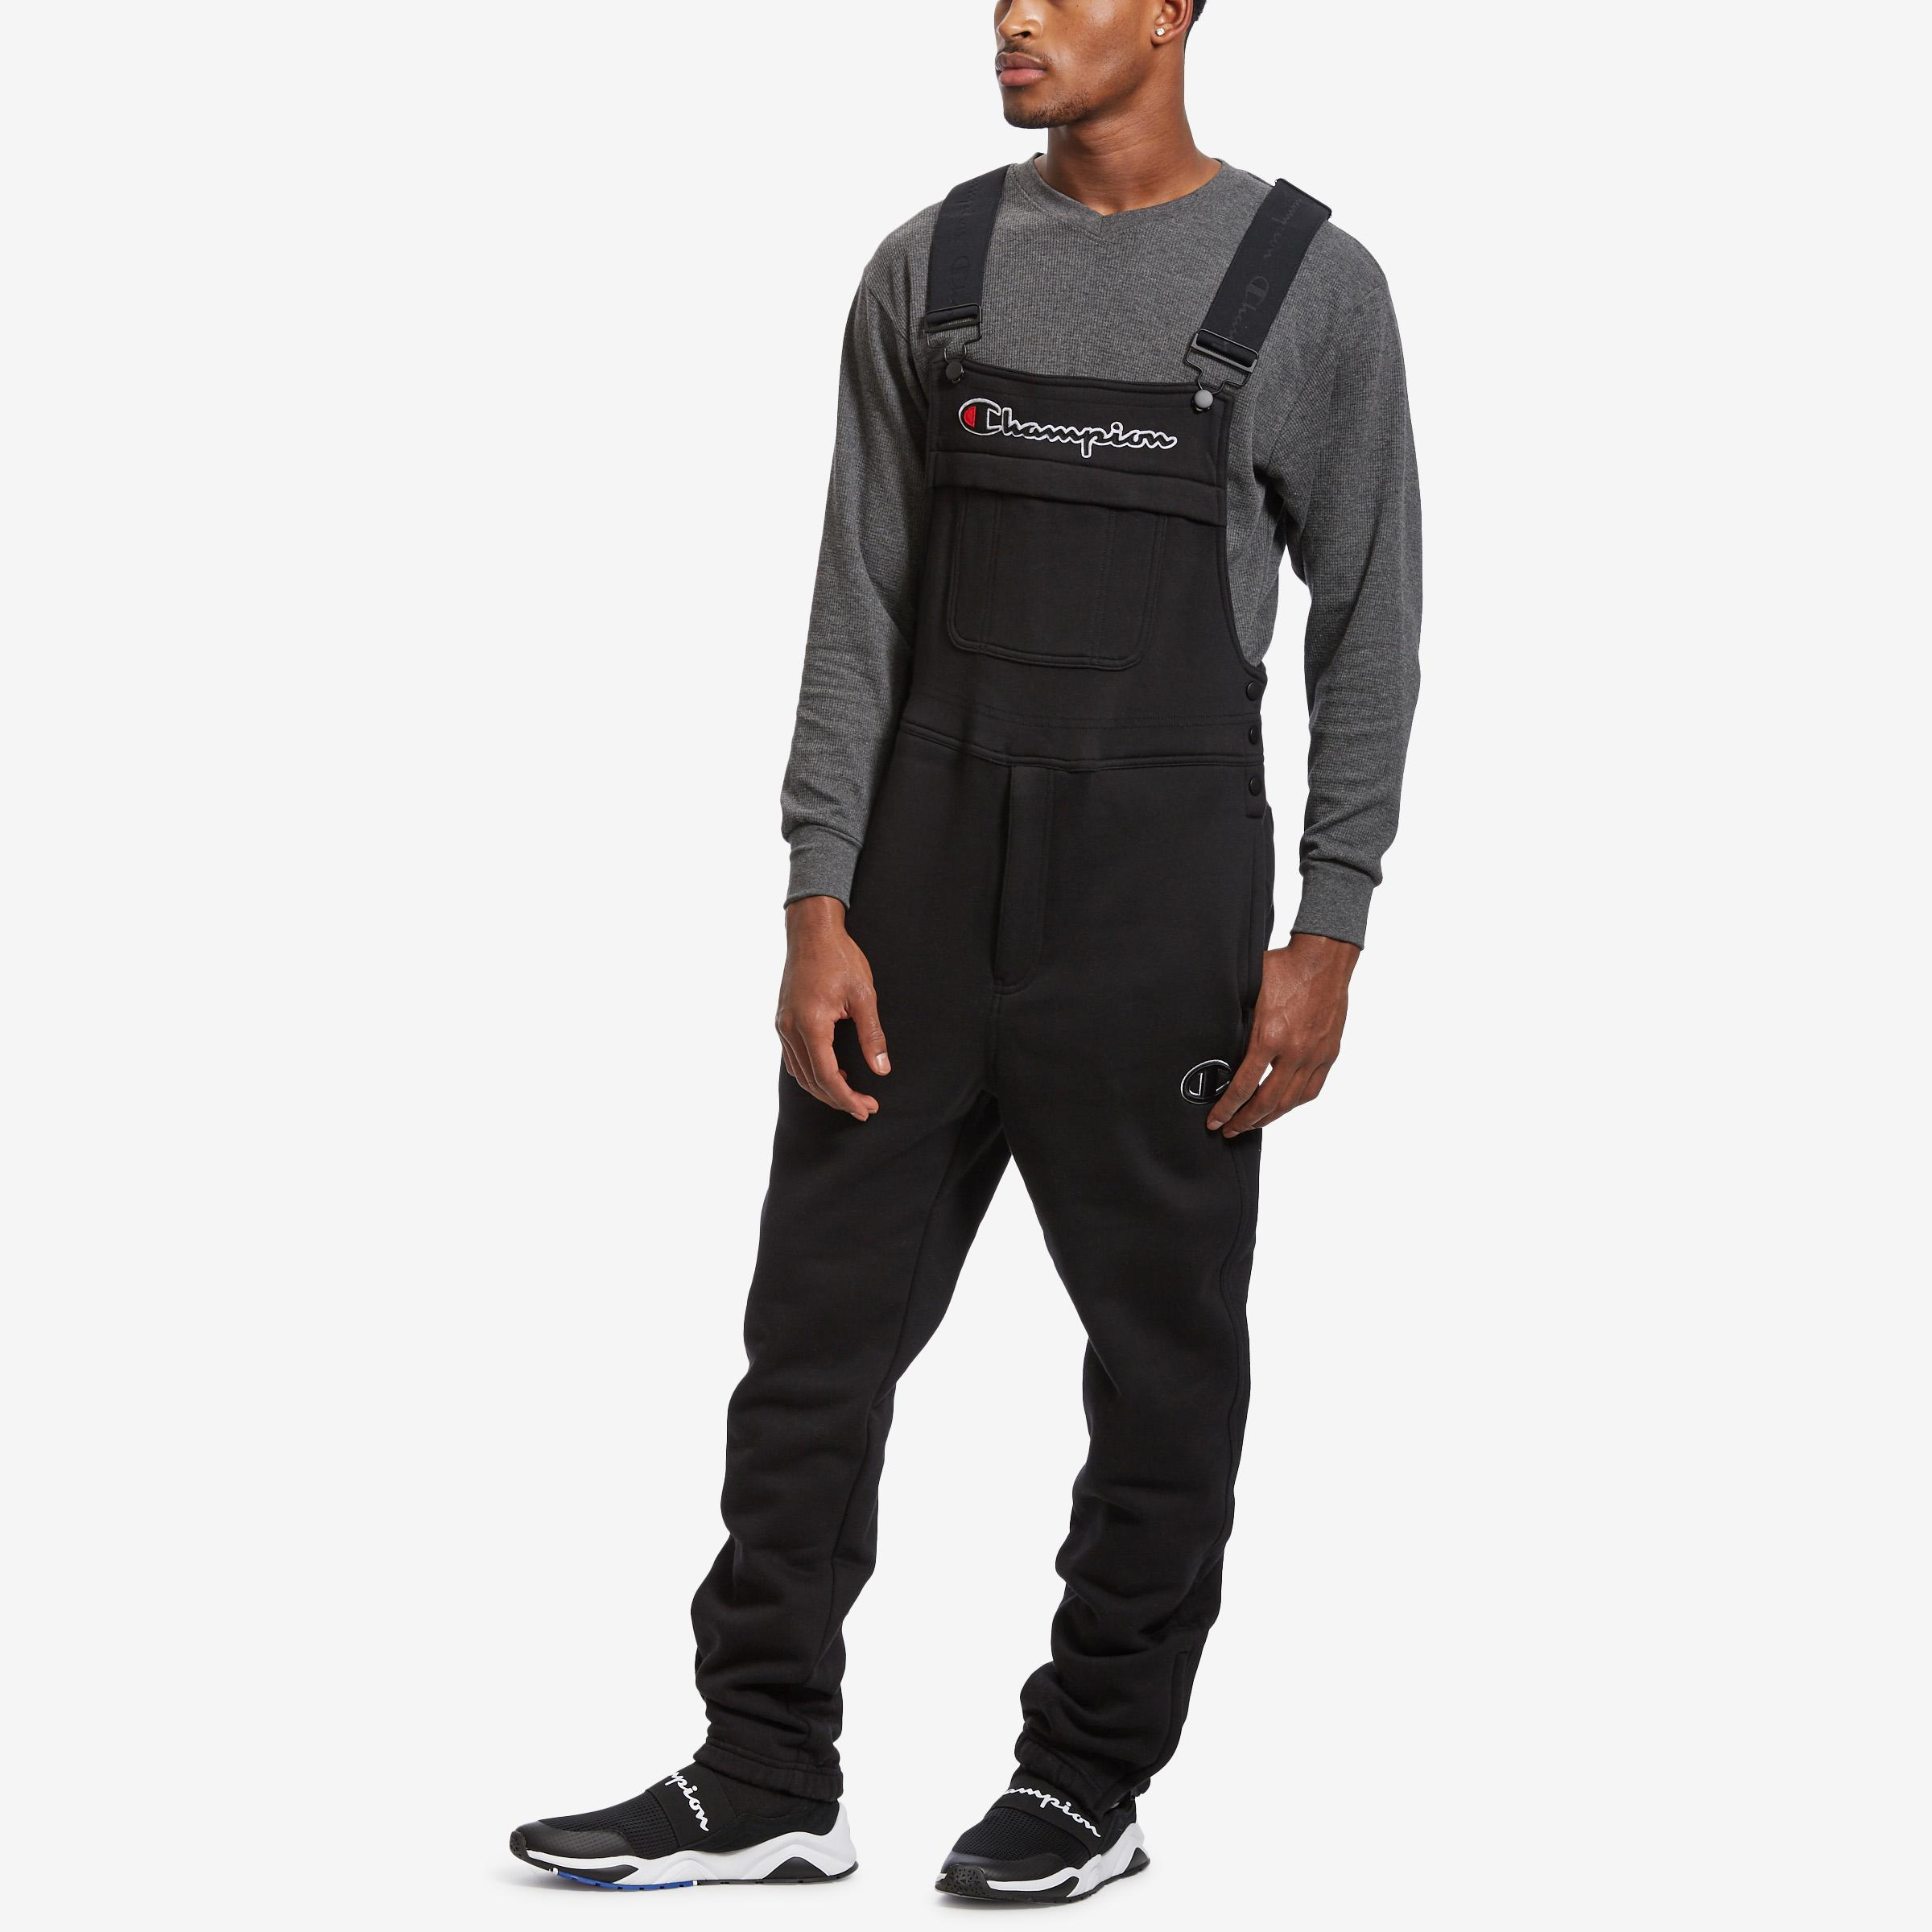 Men's Super Fleece 3.0 Overalls